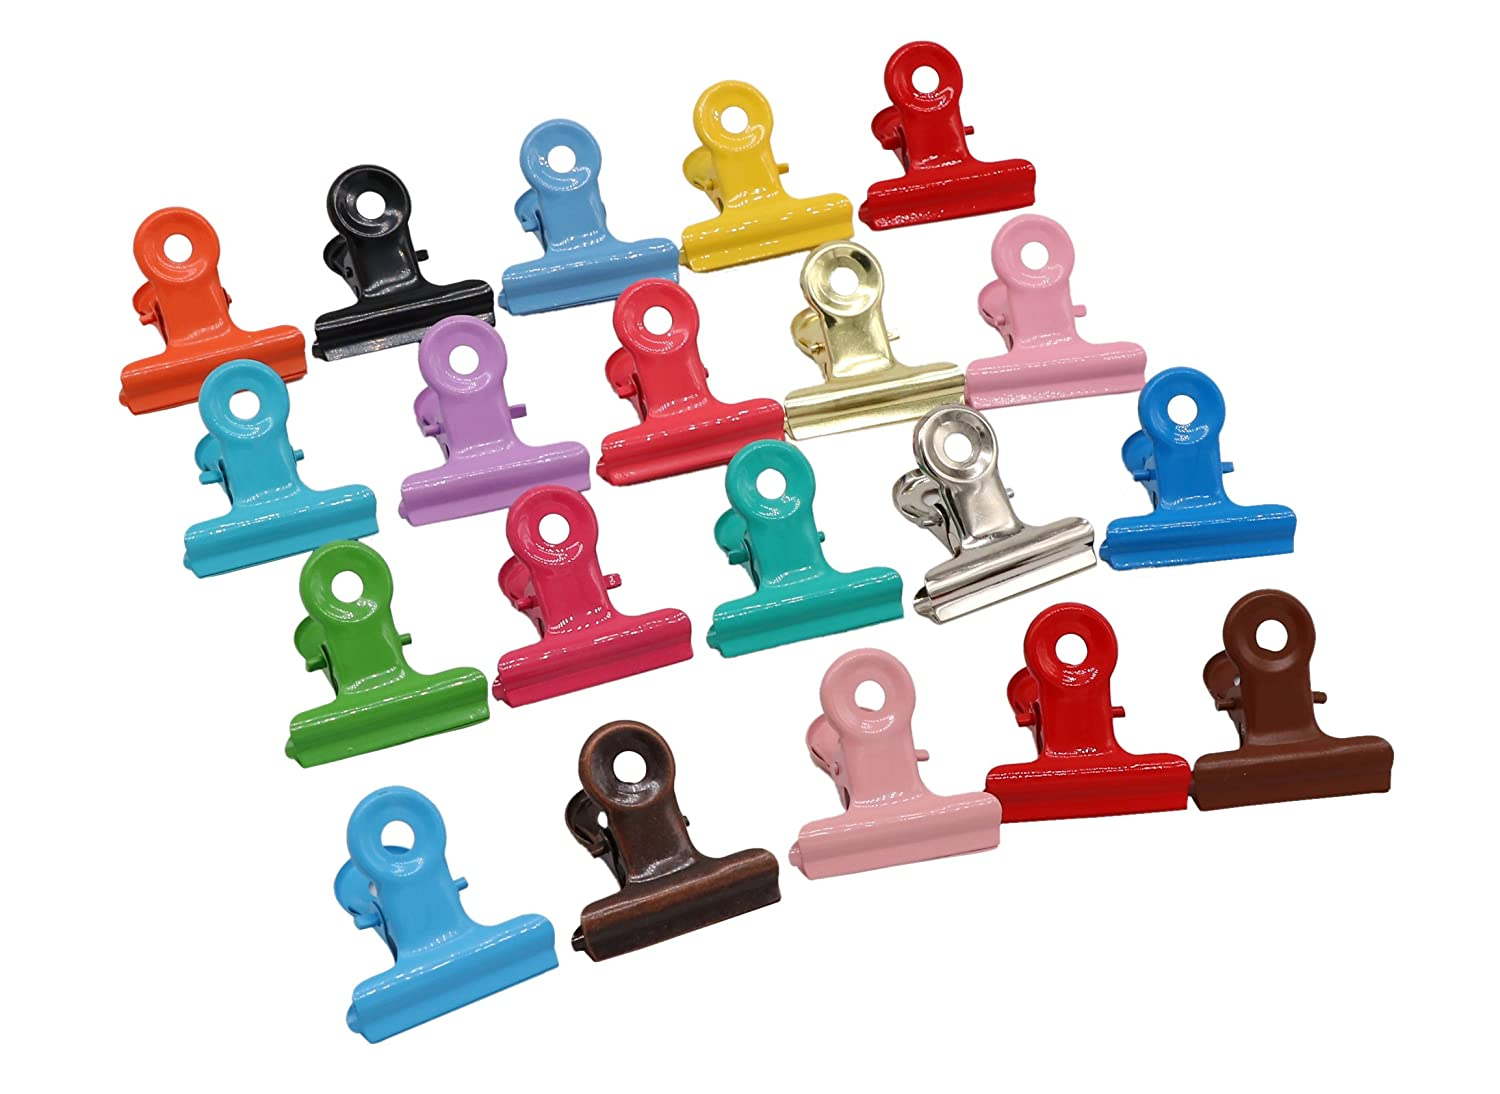 20pcs Mixed Color Metal Bulldog Clips,Utility Paper Clips,Hinge Clips for Home,Office Use,Stationery Clip AUTULET